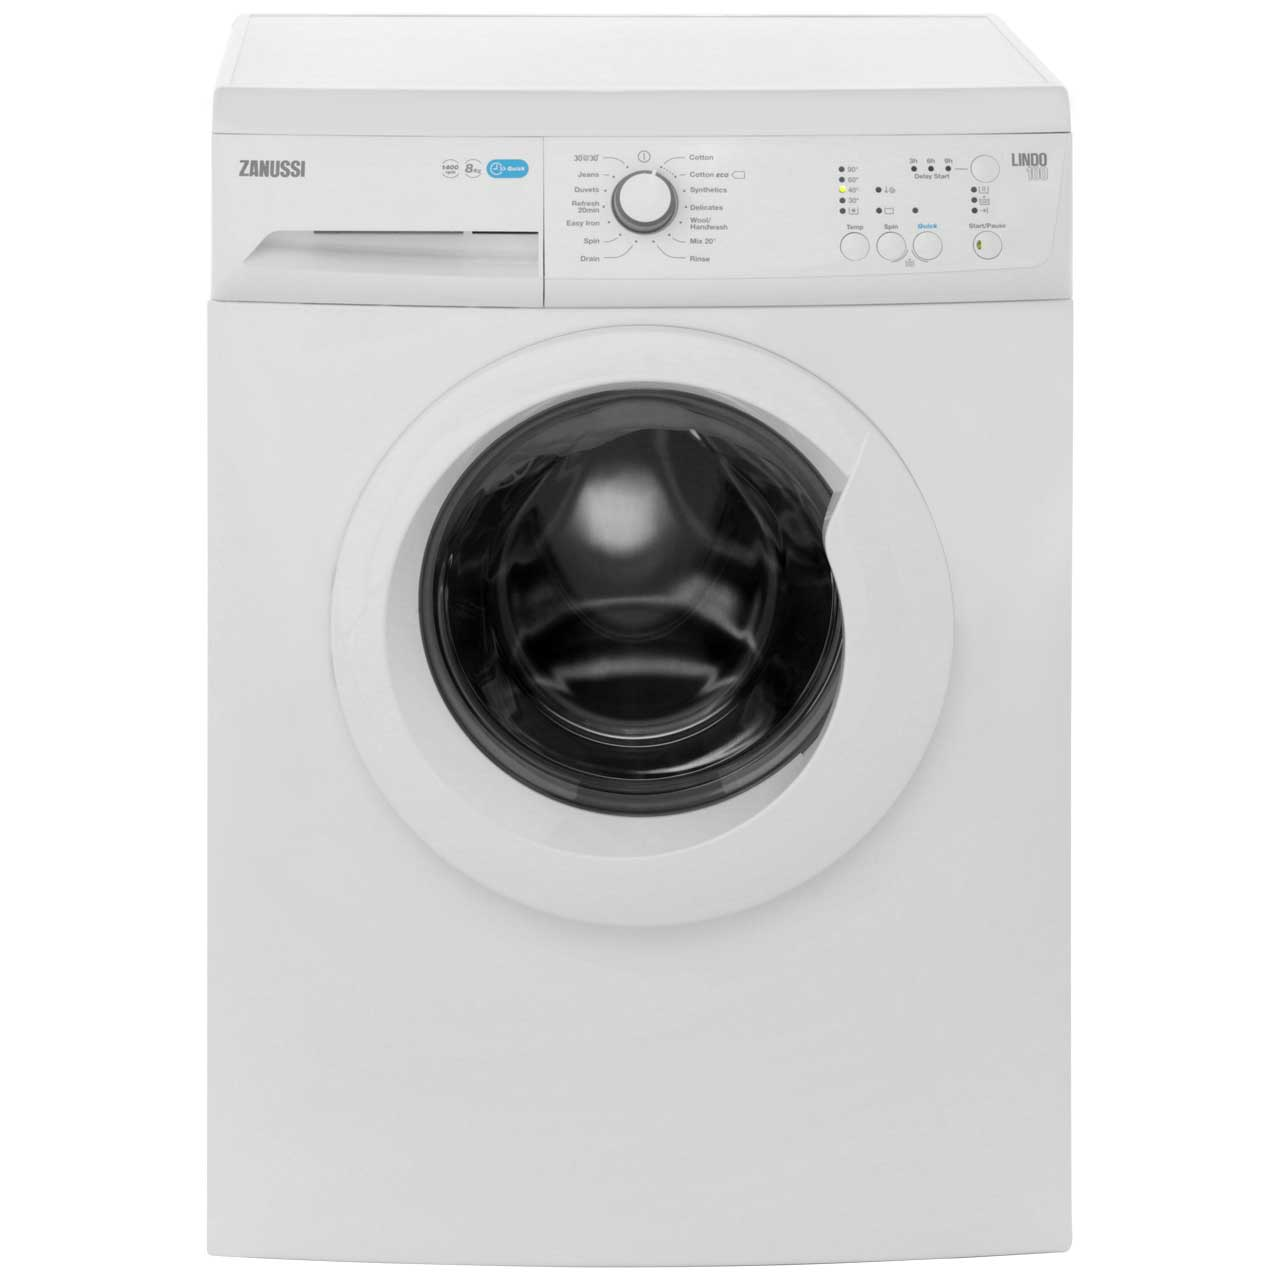 Zanussi Lindo100 ZWF81440W 8Kg Washing Machine with 1400 rpm - White